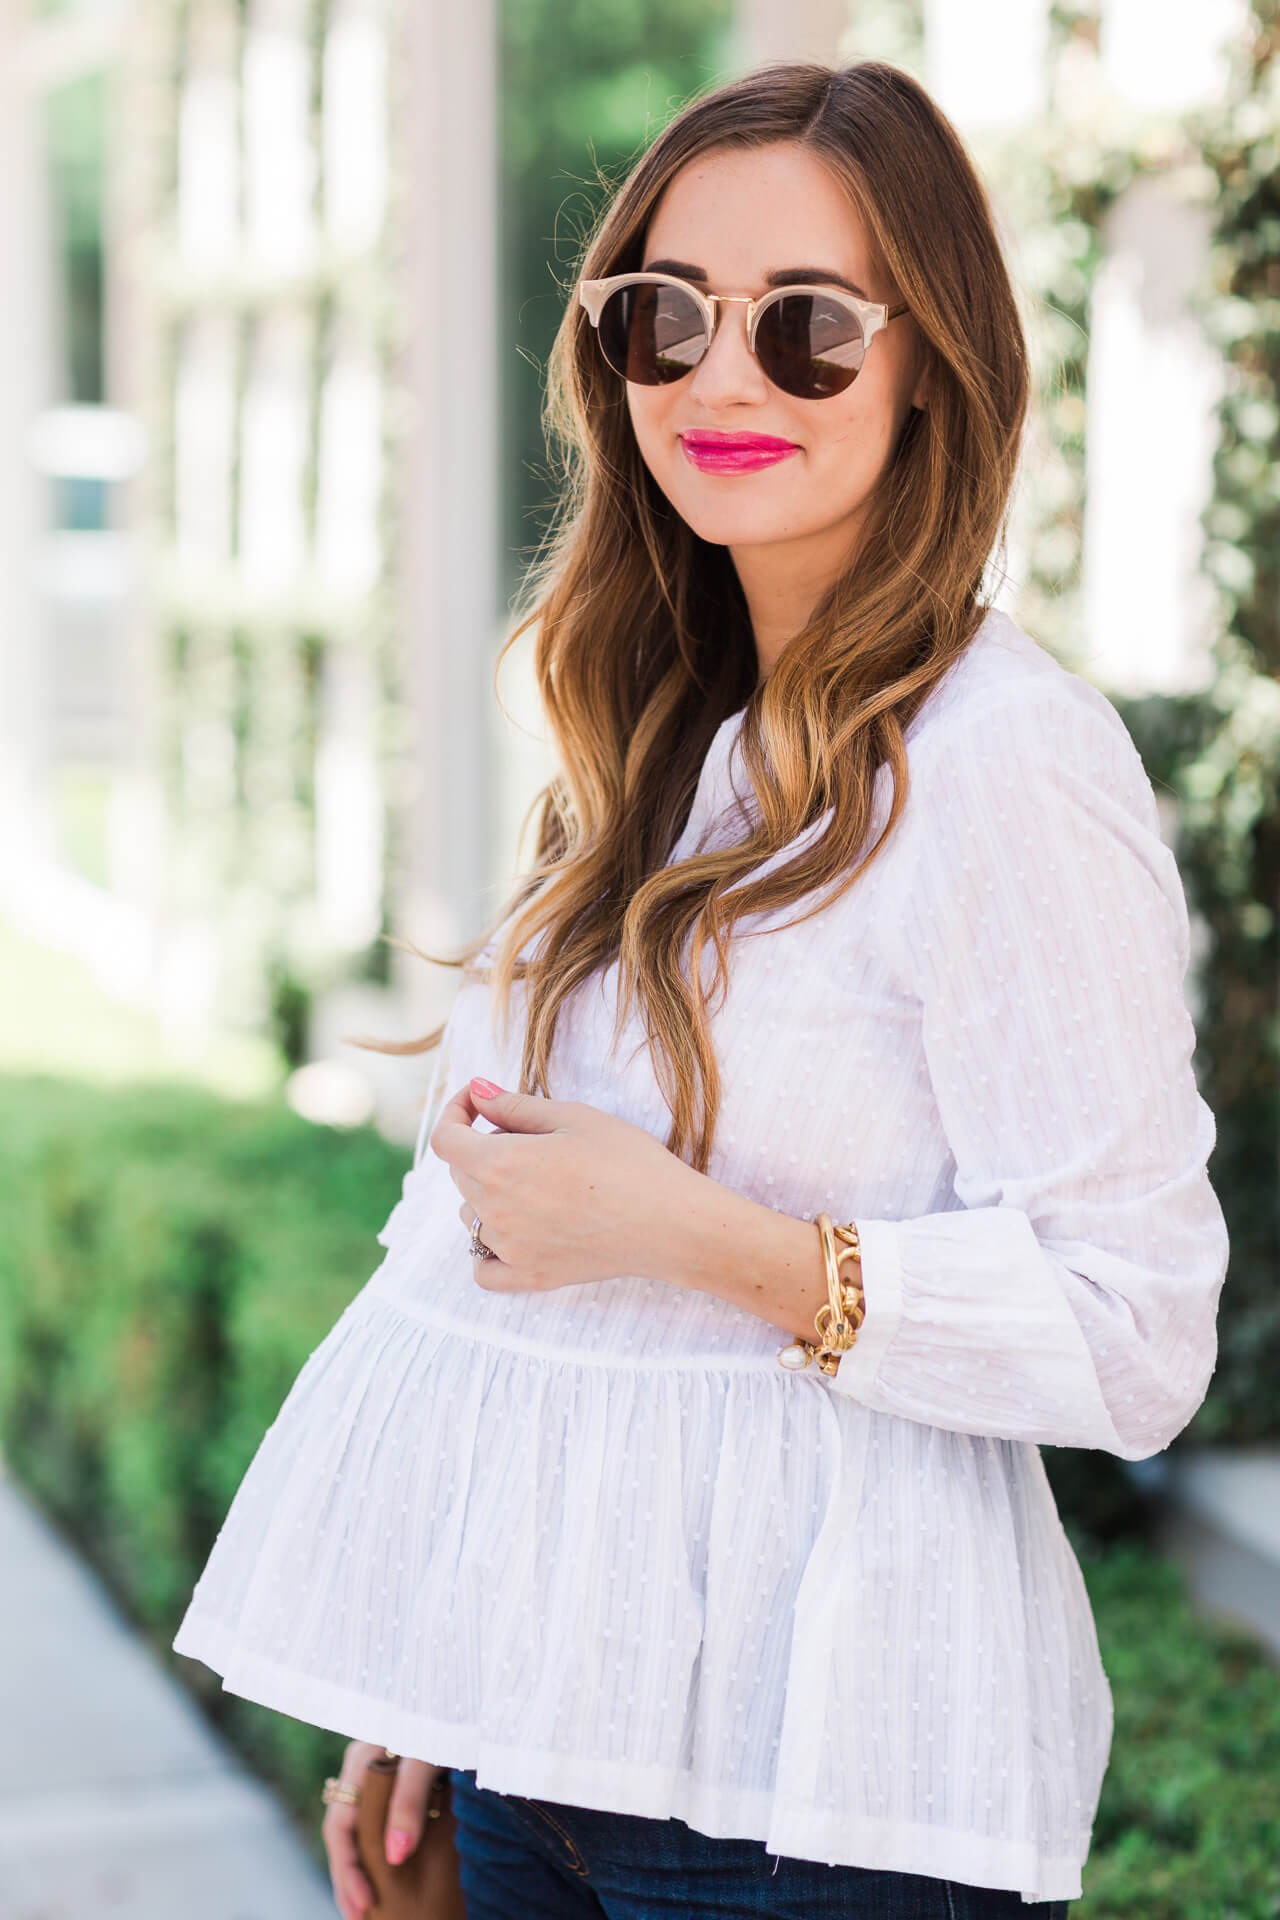 styling a white peplum top with retro sunglasses